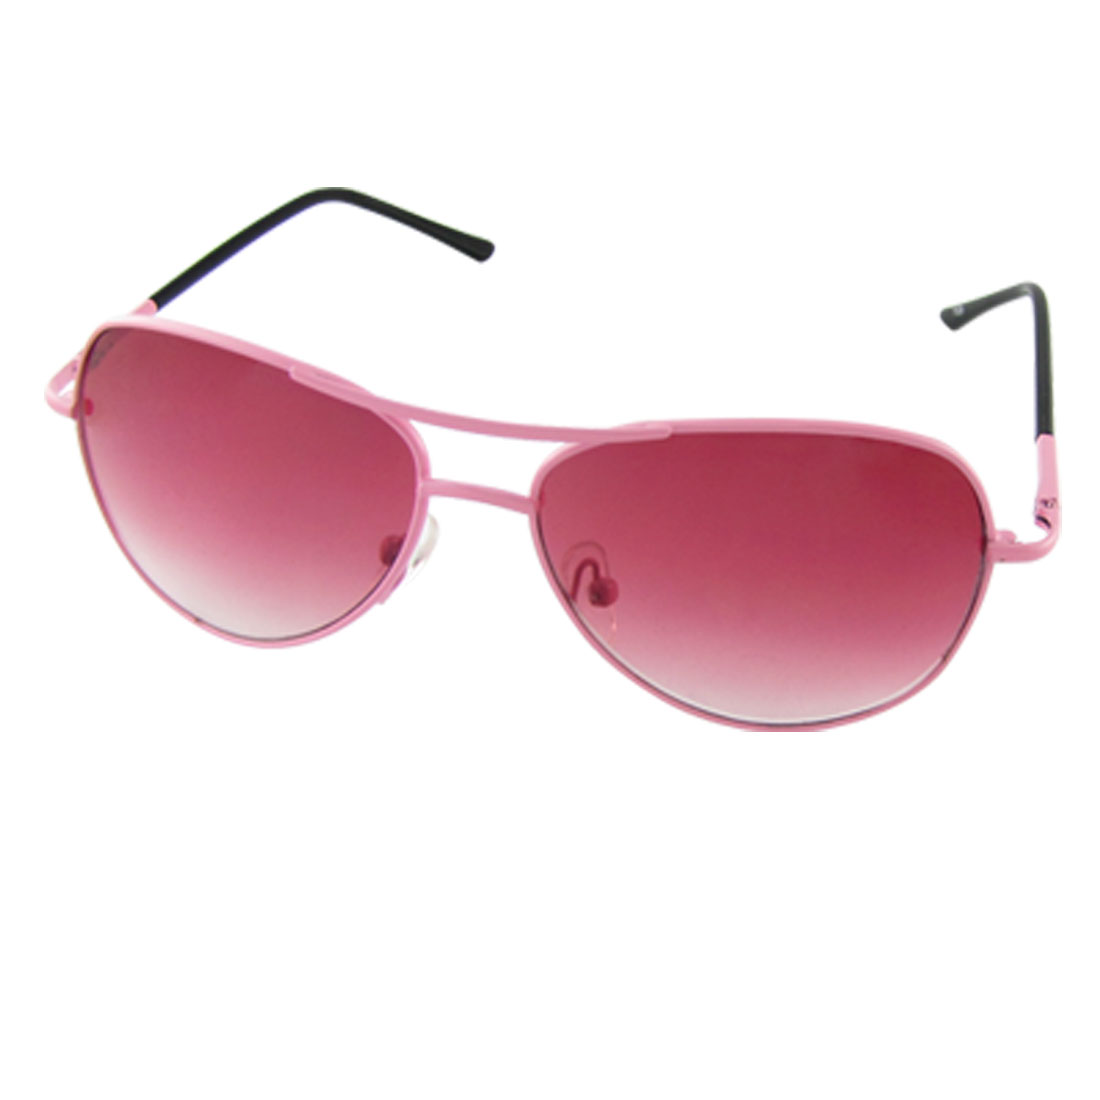 Pink Double Bridge Full Frame Sunglasses for Children